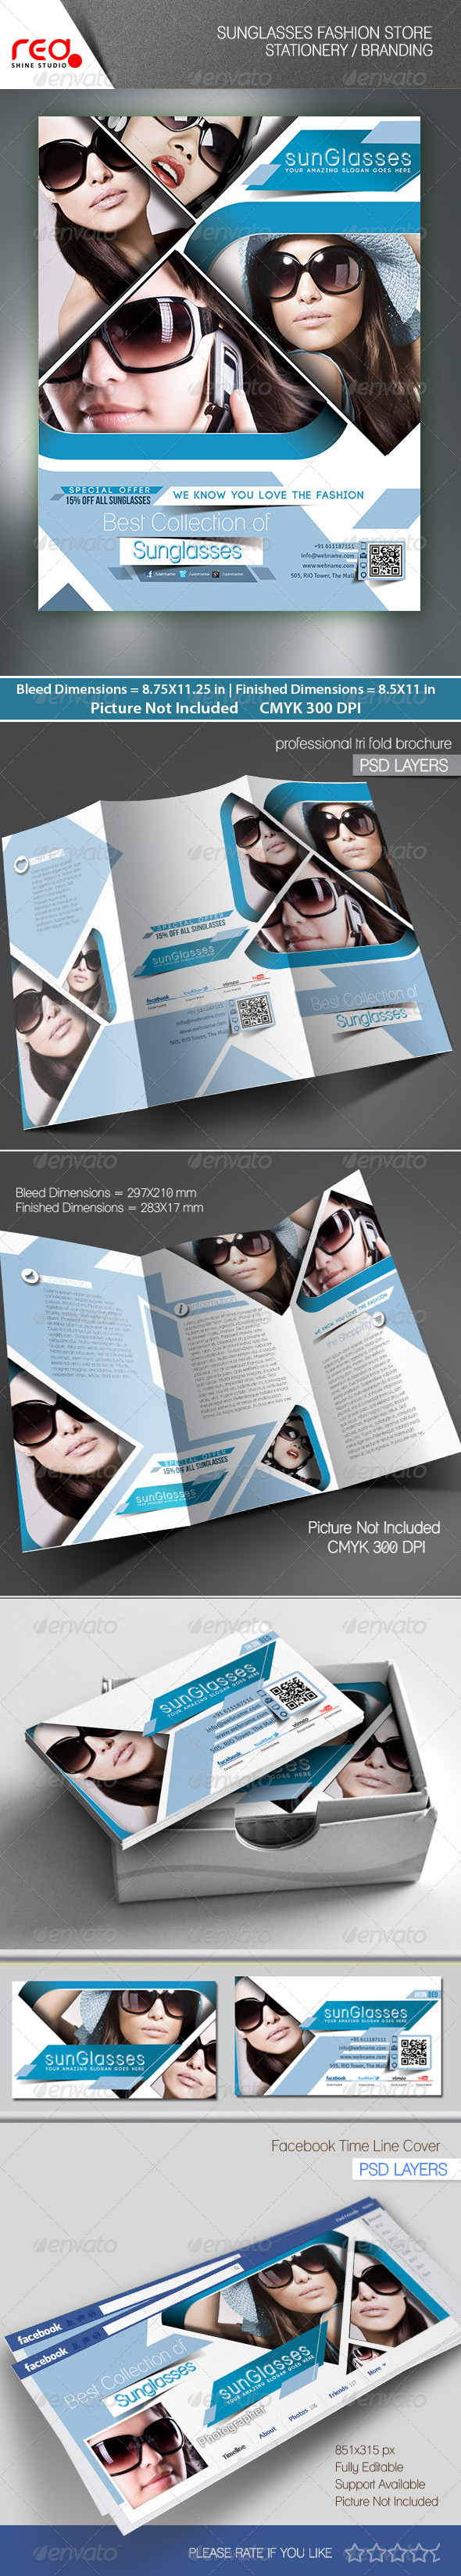 SunGlasses Fashion Store Branding Bundle - Corporate Brochures